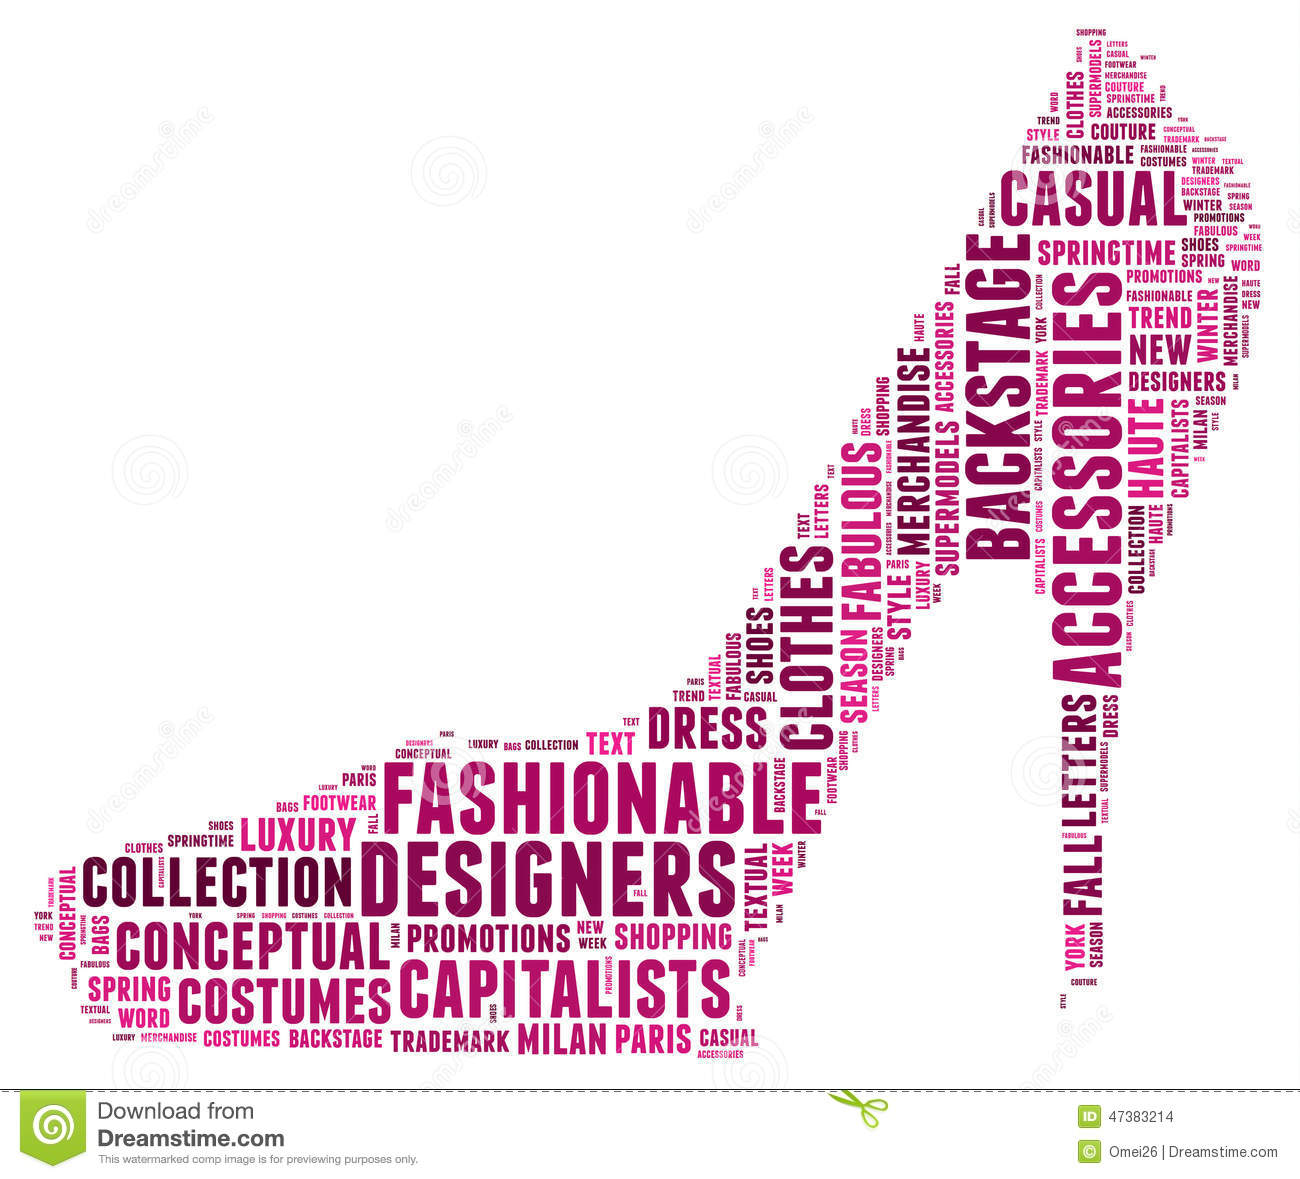 Fashion designer bags png